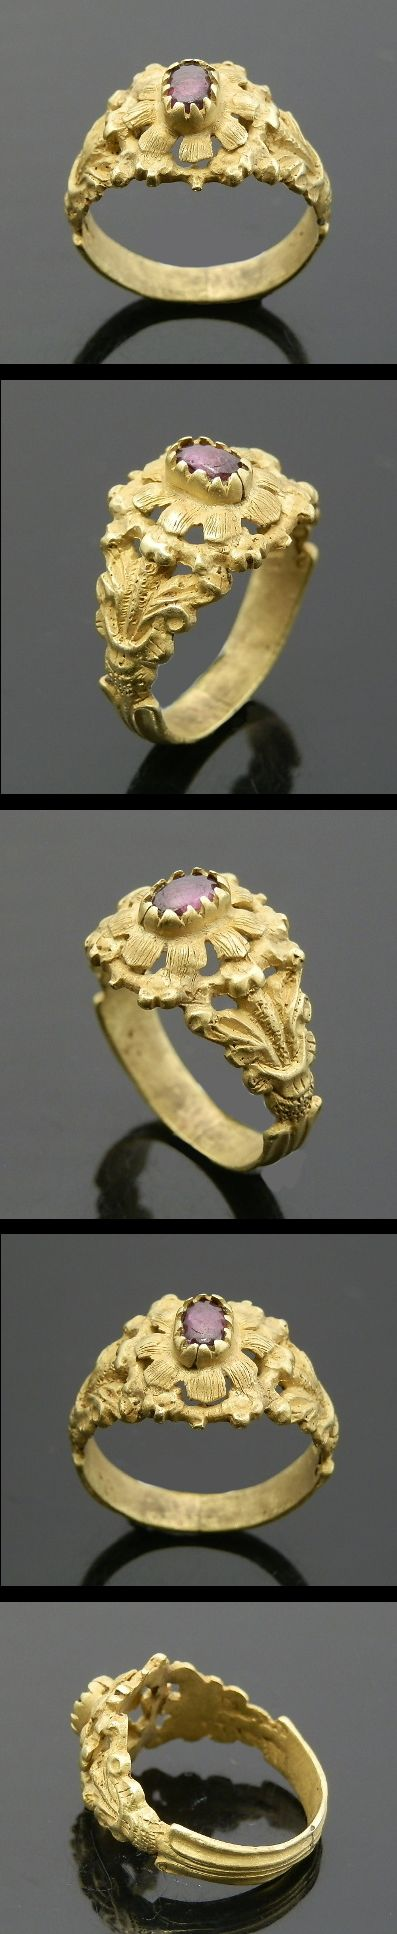 JACOBEAN PERIOD GOLD RING,  Description:  Information: Floral decoration to the shoulders and bezel with a raised central Amethyst, Date: C. Late 17th century